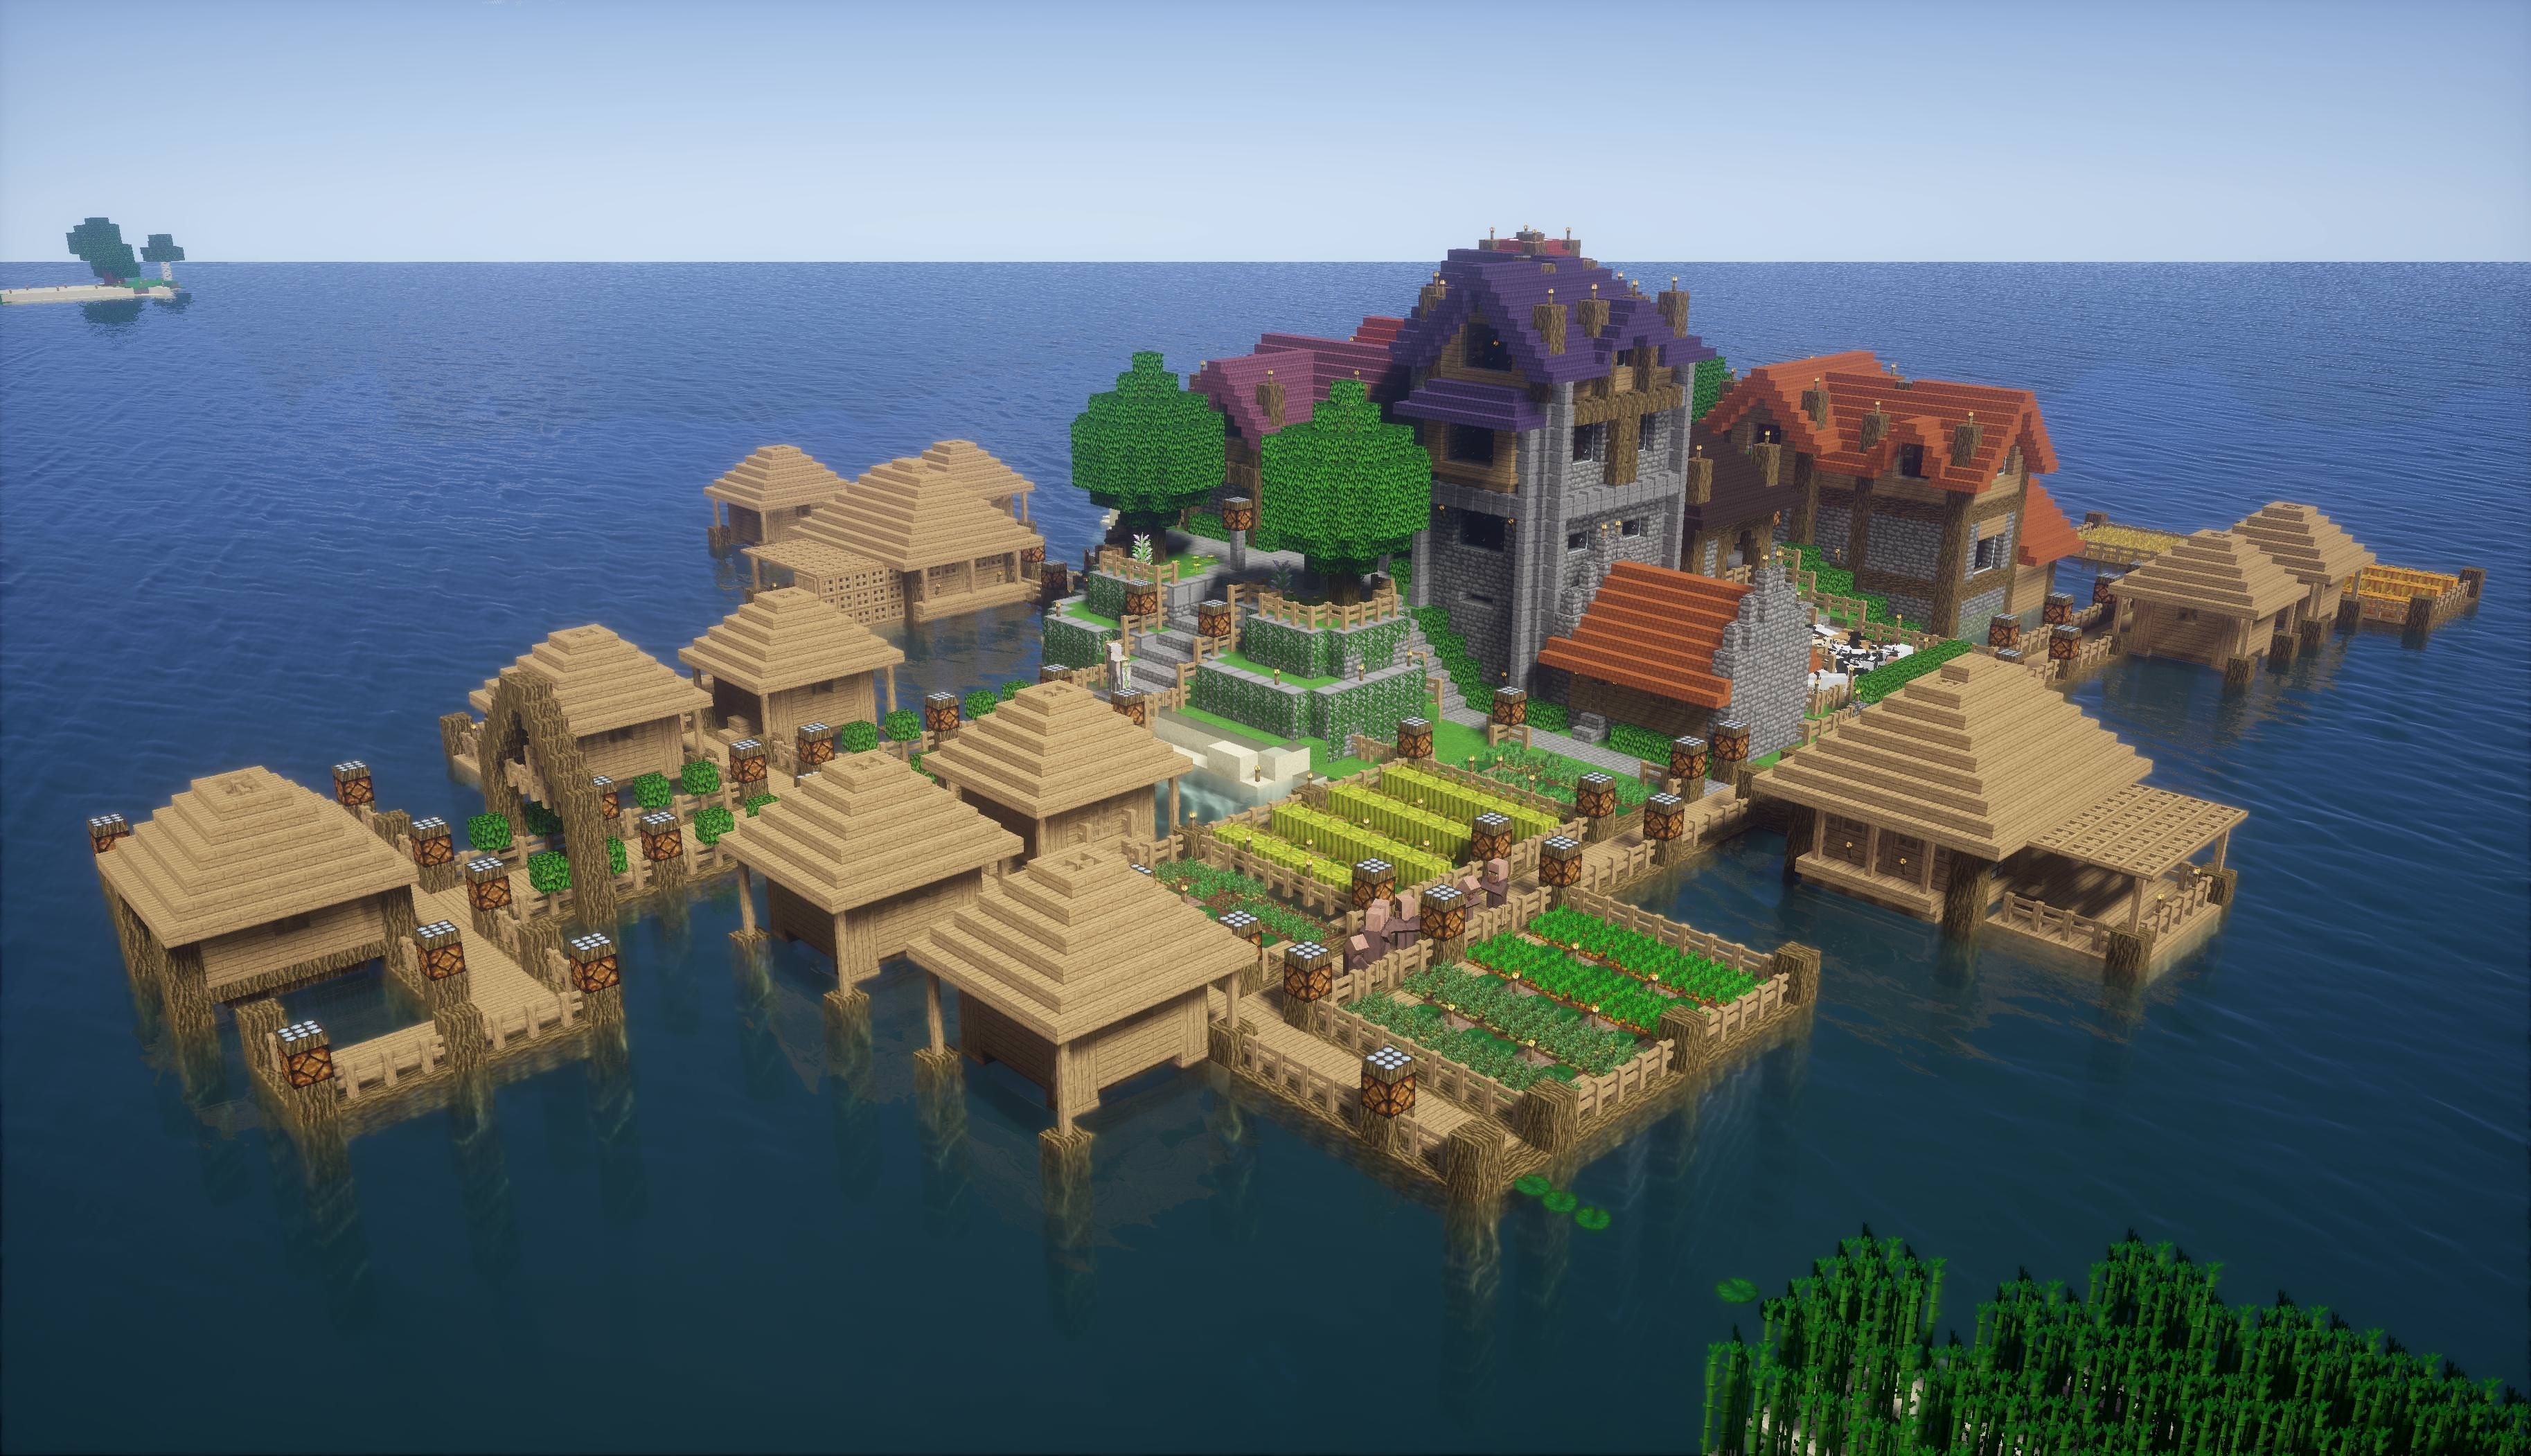 Pin by Bethany Saffo on Minecraft Building Ideas ...